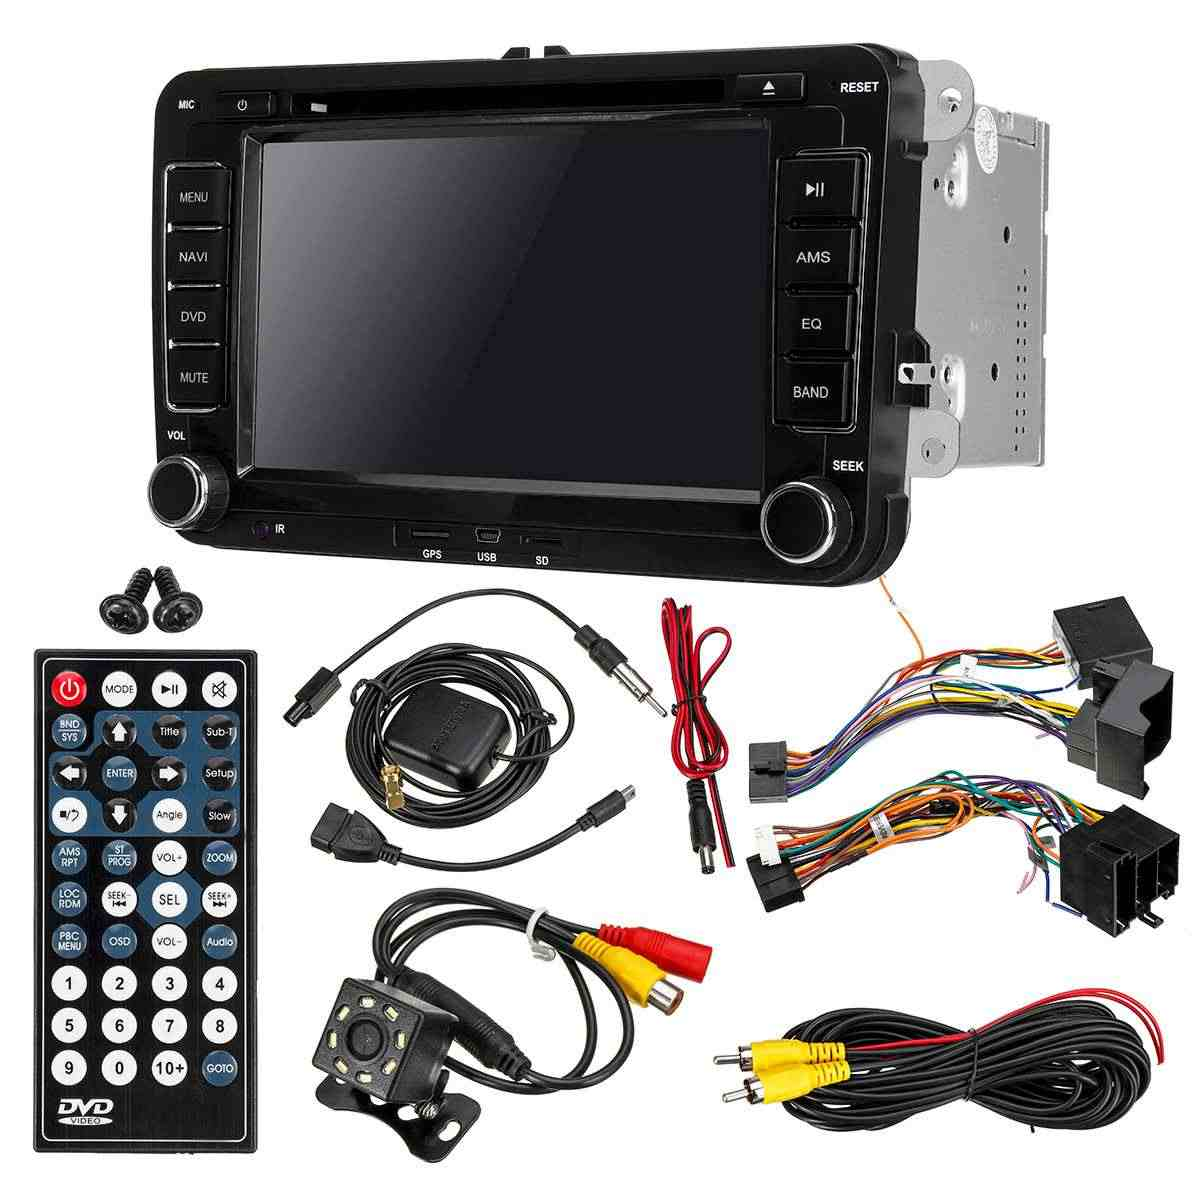 "7 ""2 DIN Multimedia Player Mobil Radio Stereo Auto Radio Dvd Player GPS untuk VW Golf 5 6 Touran Passat jetta Polo Tiguan Bora Skoda"